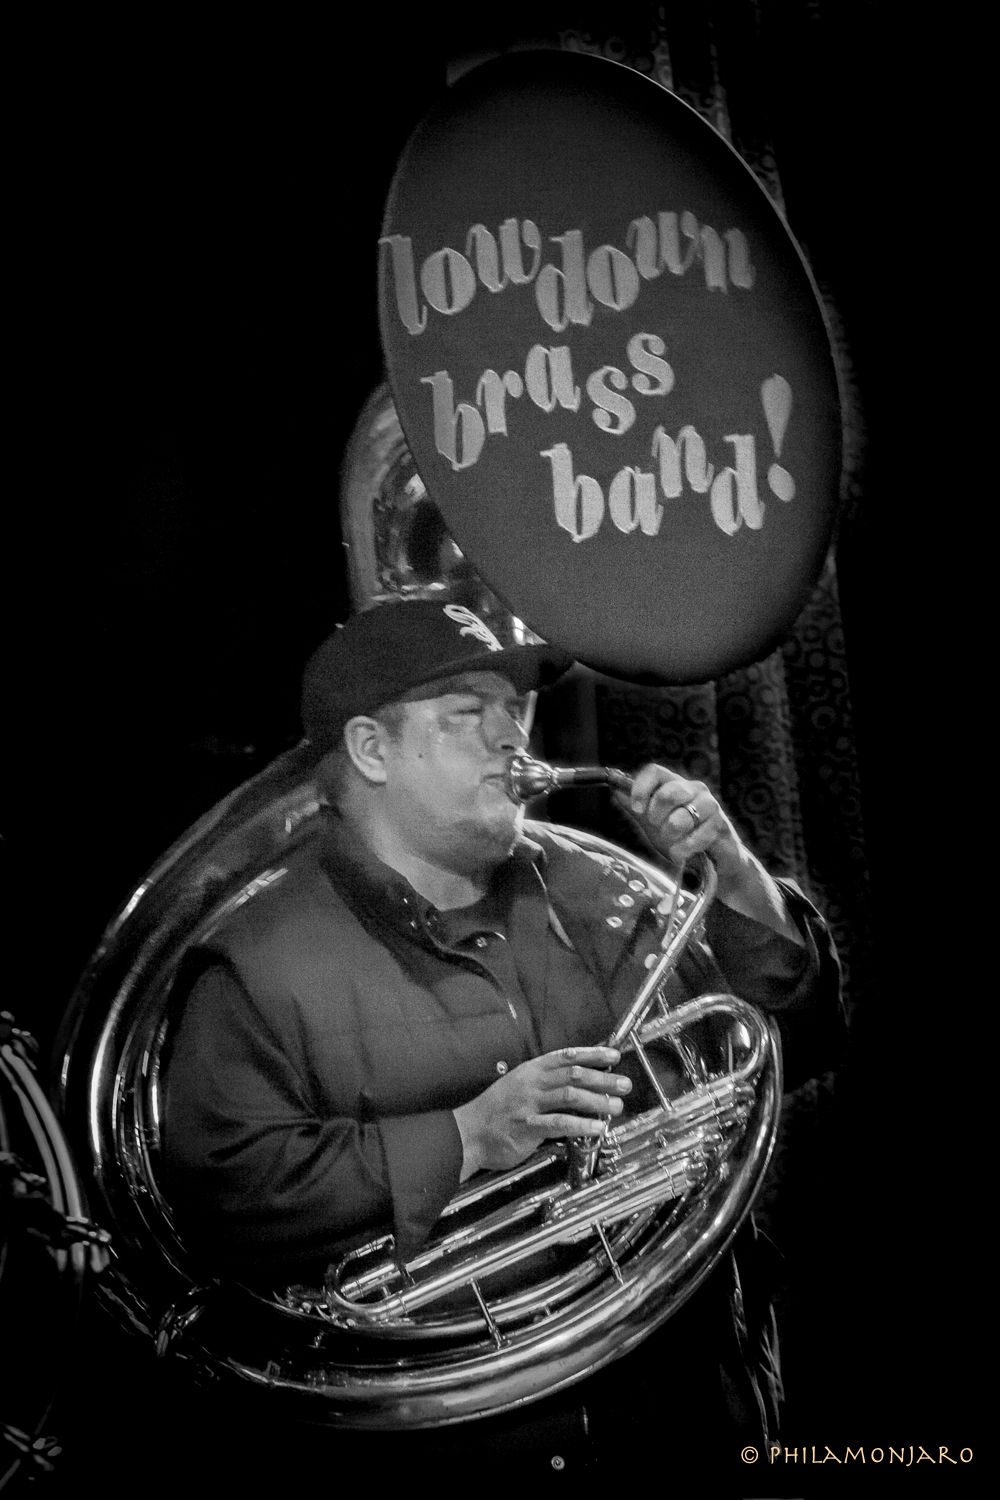 Lance Loiselle - Lowdown Brass Band